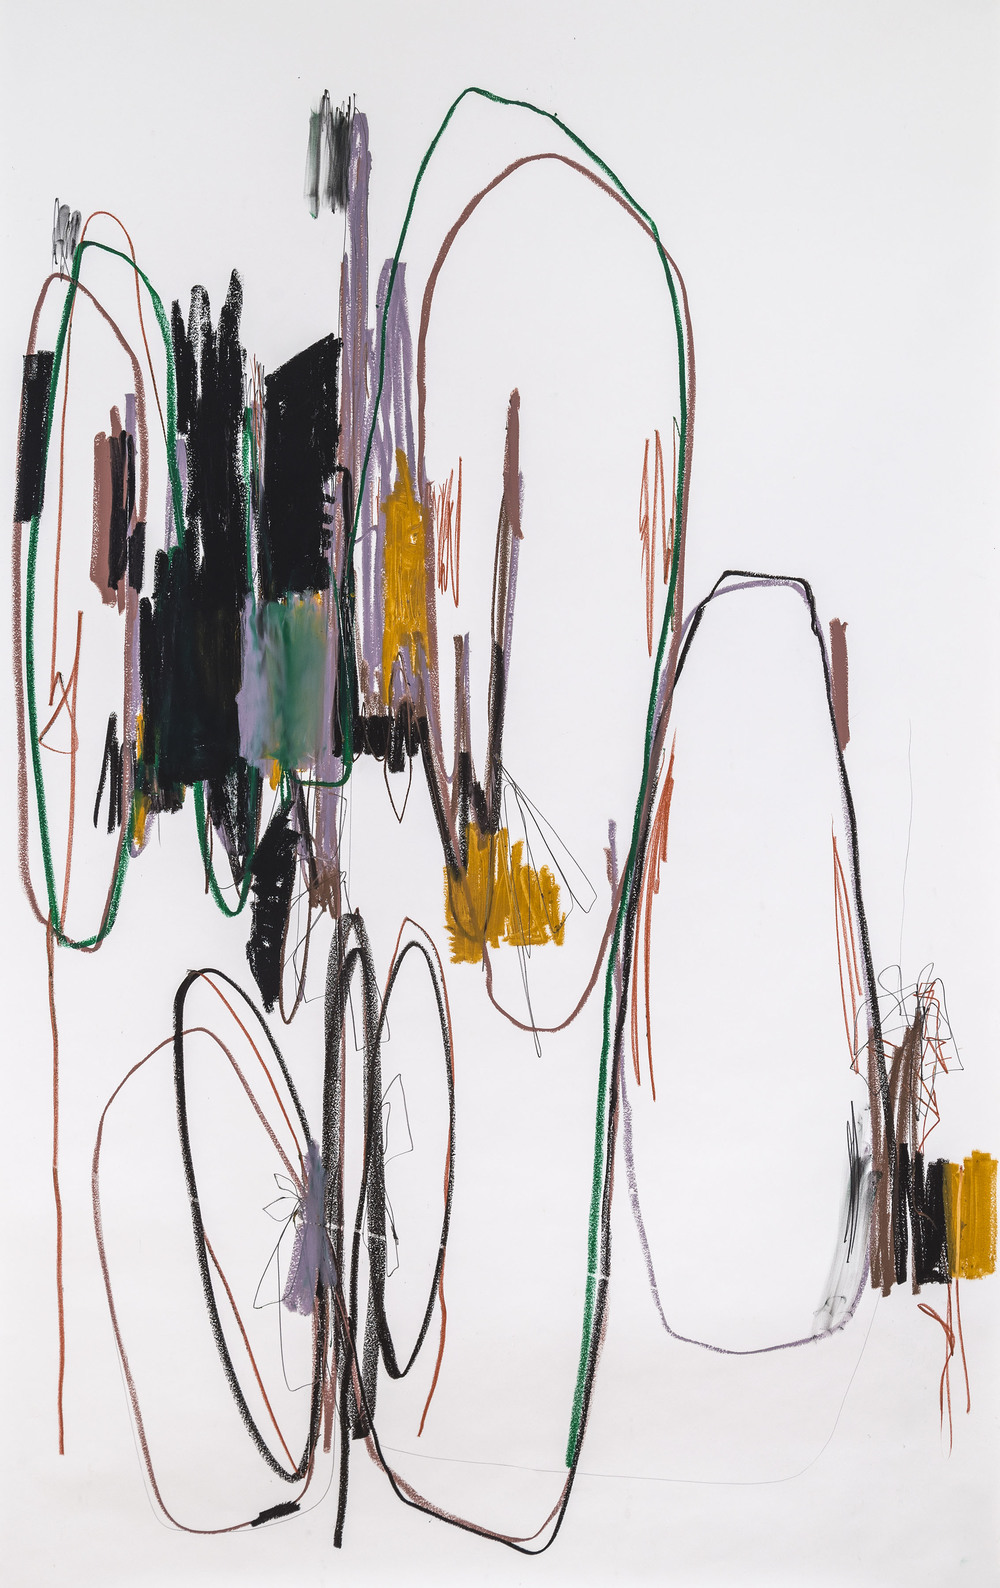 Upper West Side   Hook & Eye Project - Mary Prescott, piano  2014  oil stick, charcoal & pencil on paper  66x38""